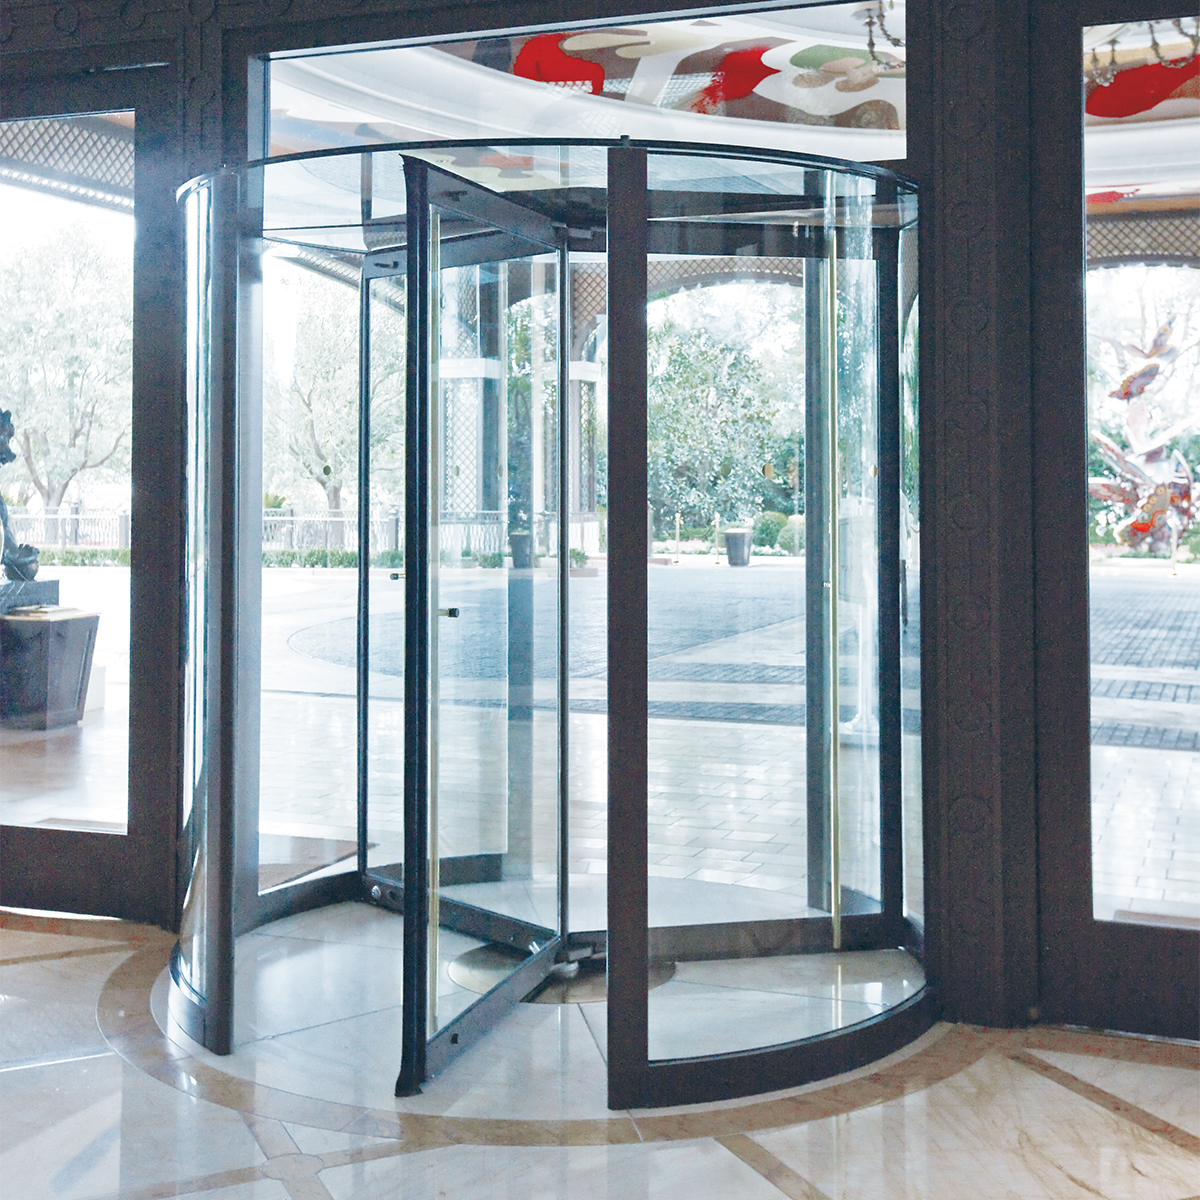 Types Of Automatic Revolving Doors